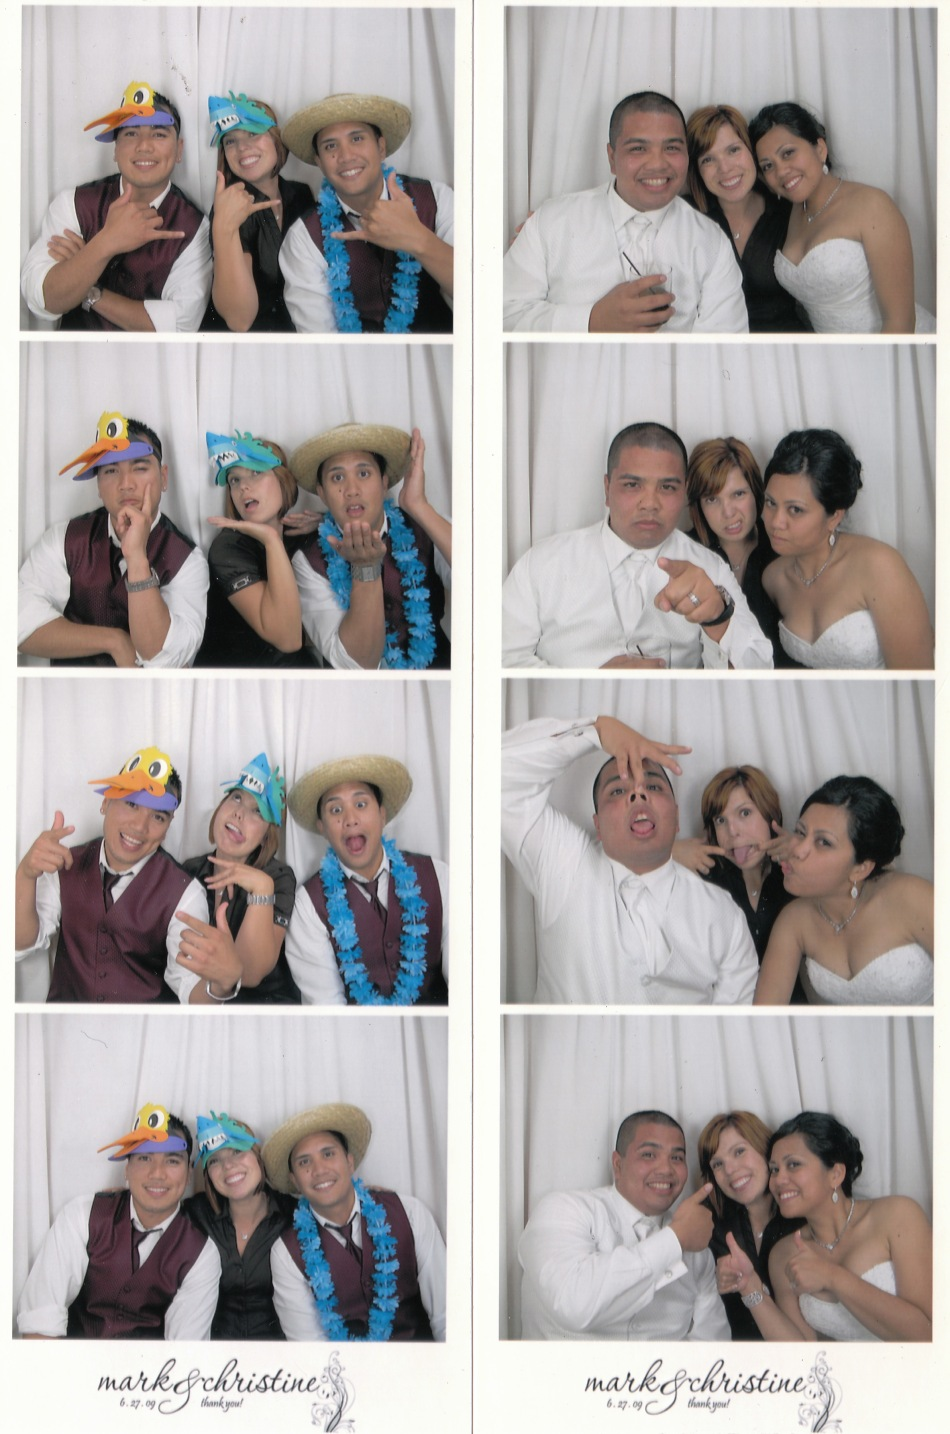 Celebrating with Mark & Christine + Groomsmen!